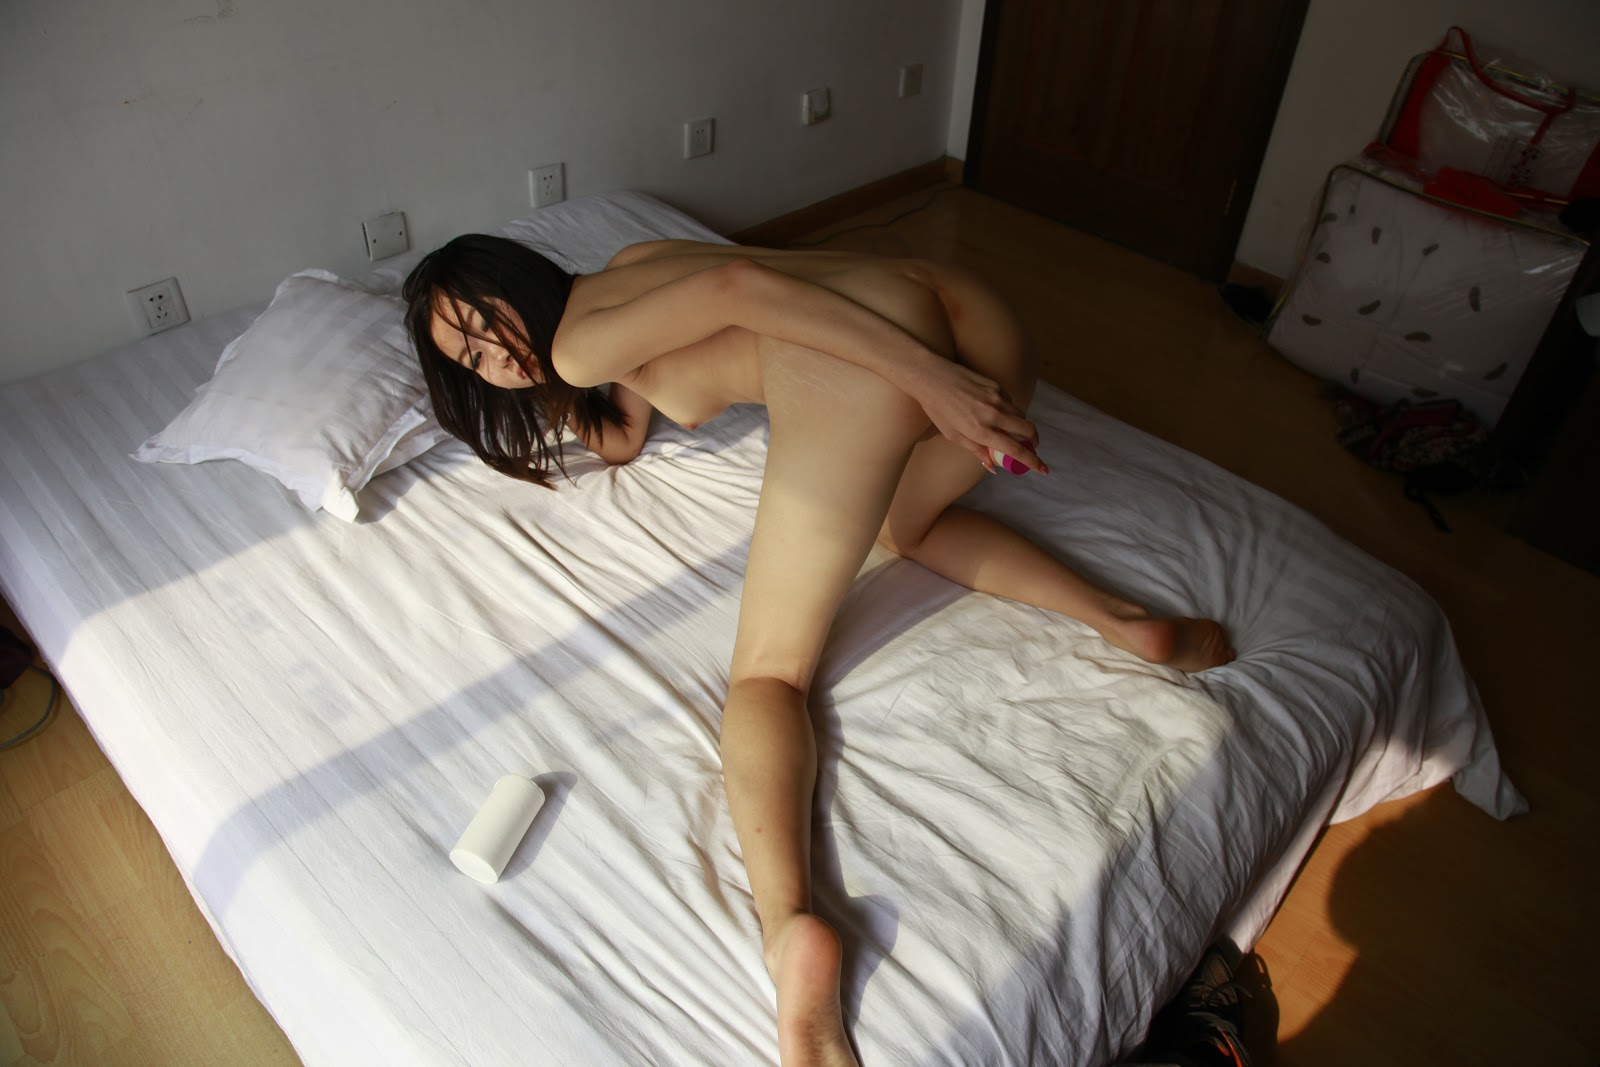 Chinese Nude_Art_Photos_-_244_-_XiaoYue.rar